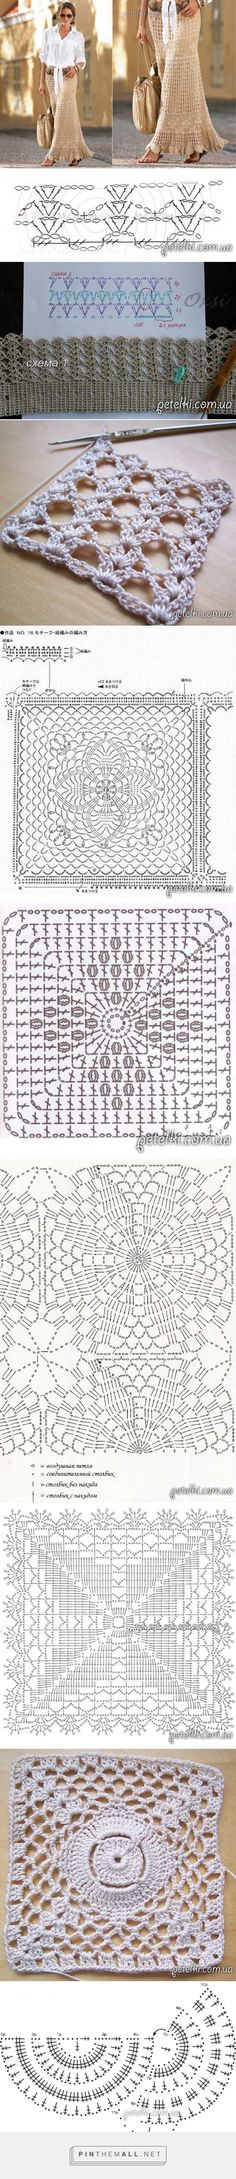 Crochet Skirt Diagram Charts Knitting 32 Ideas For 2019 See other ideas and pictures from the category menu…. Faneks healthy and active life ideas Crochet Diagram, Crochet Chart, Crochet Motif, Crochet Lace, Crochet Stitches, Gilet Crochet, Crochet Blouse, Crochet Skirts, Crochet Clothes